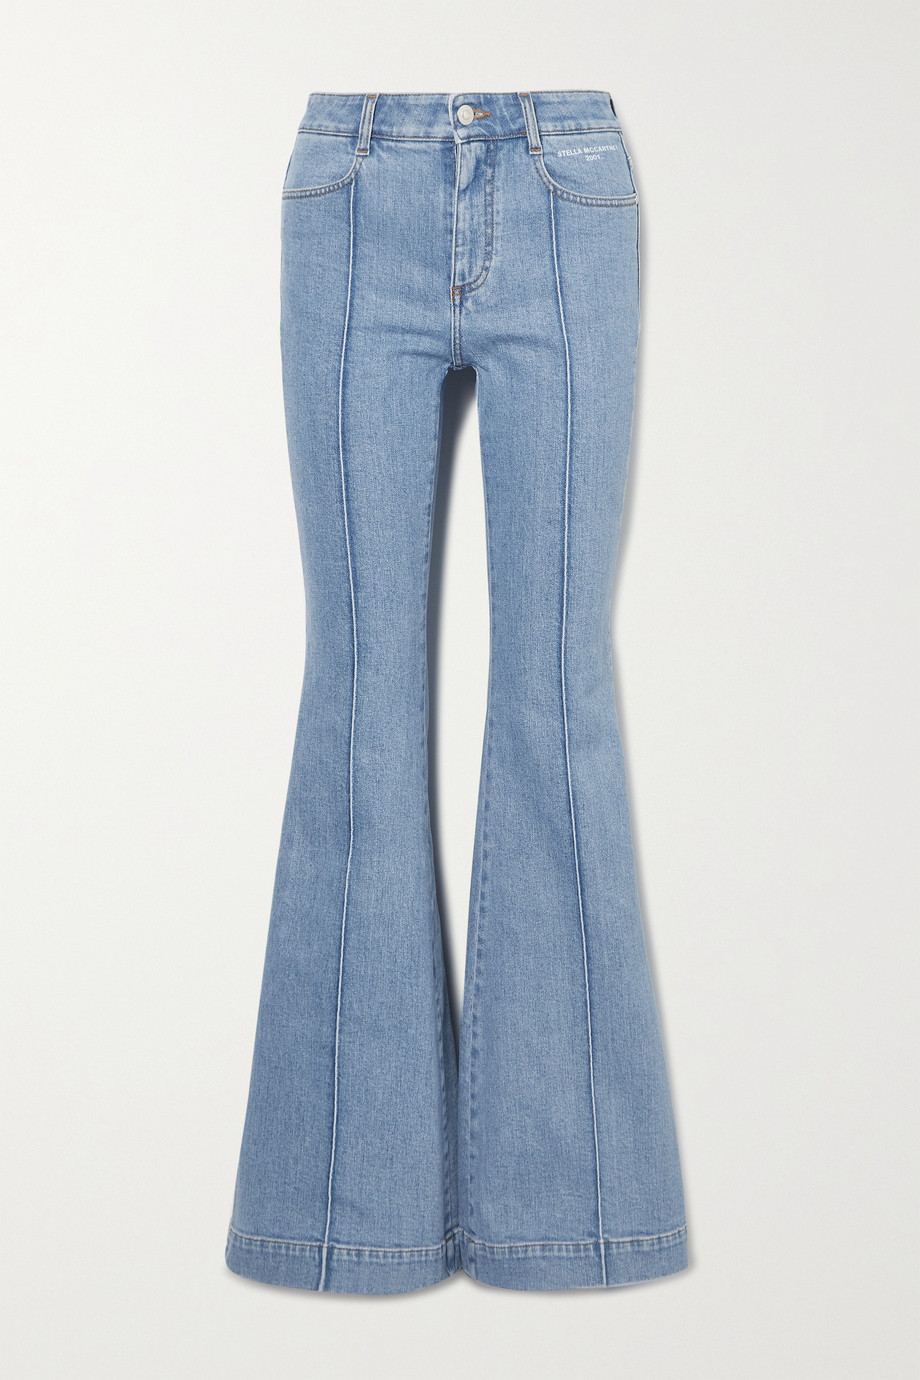 Stella McCartney The '70s high-rise flared jeans